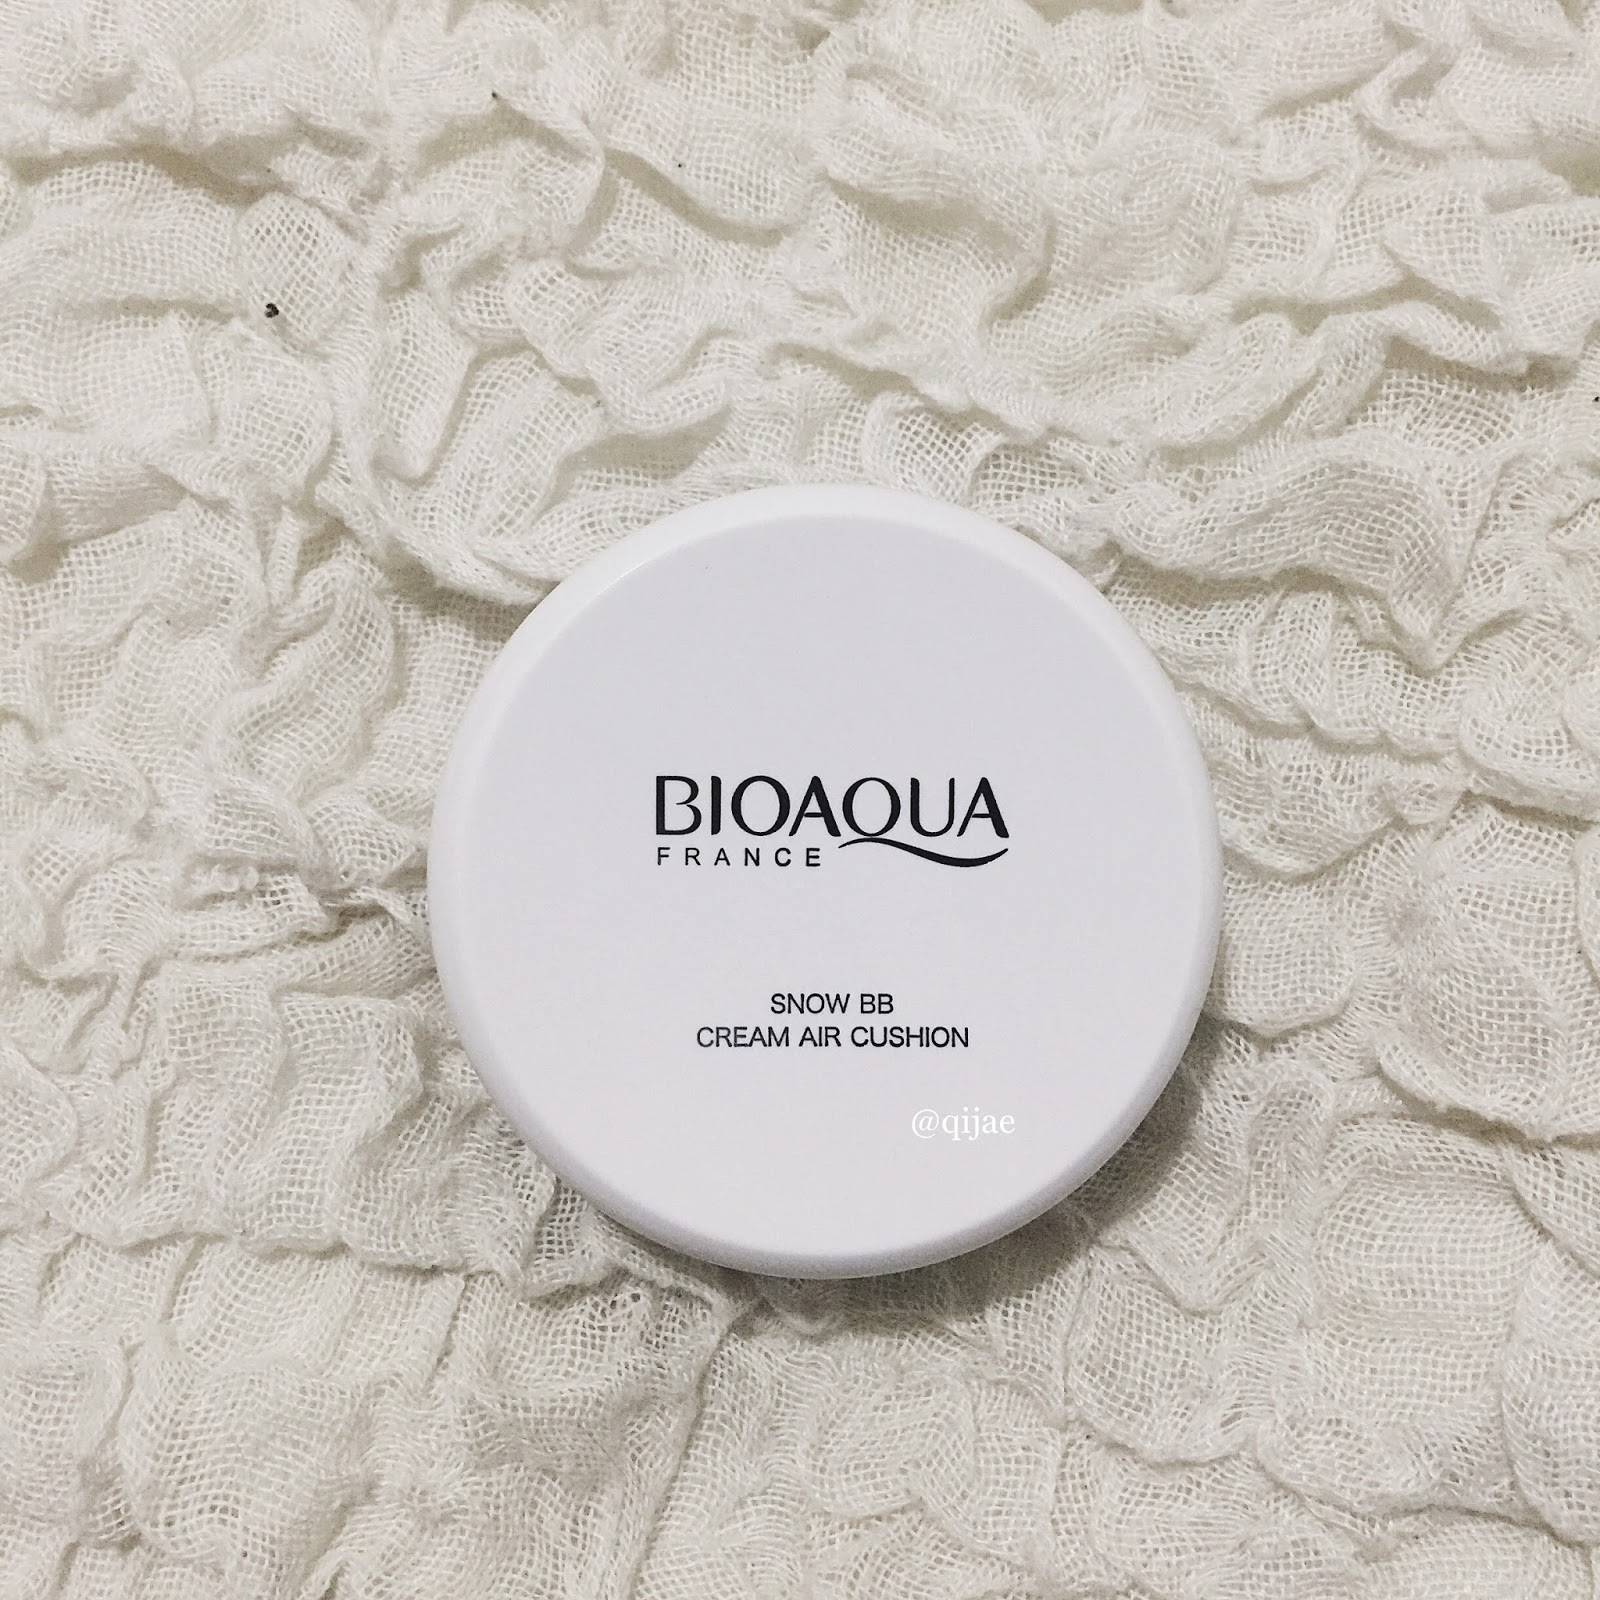 Mylifeasqijae Review Bioaqua France Cream Air Cushion Extreme Base Bio Aqua Aircusion Its A Normal White Compact Made Of Plastic It Looks Boring And Easy To Get Dirty I Already Messed Up Inside The But With That Price